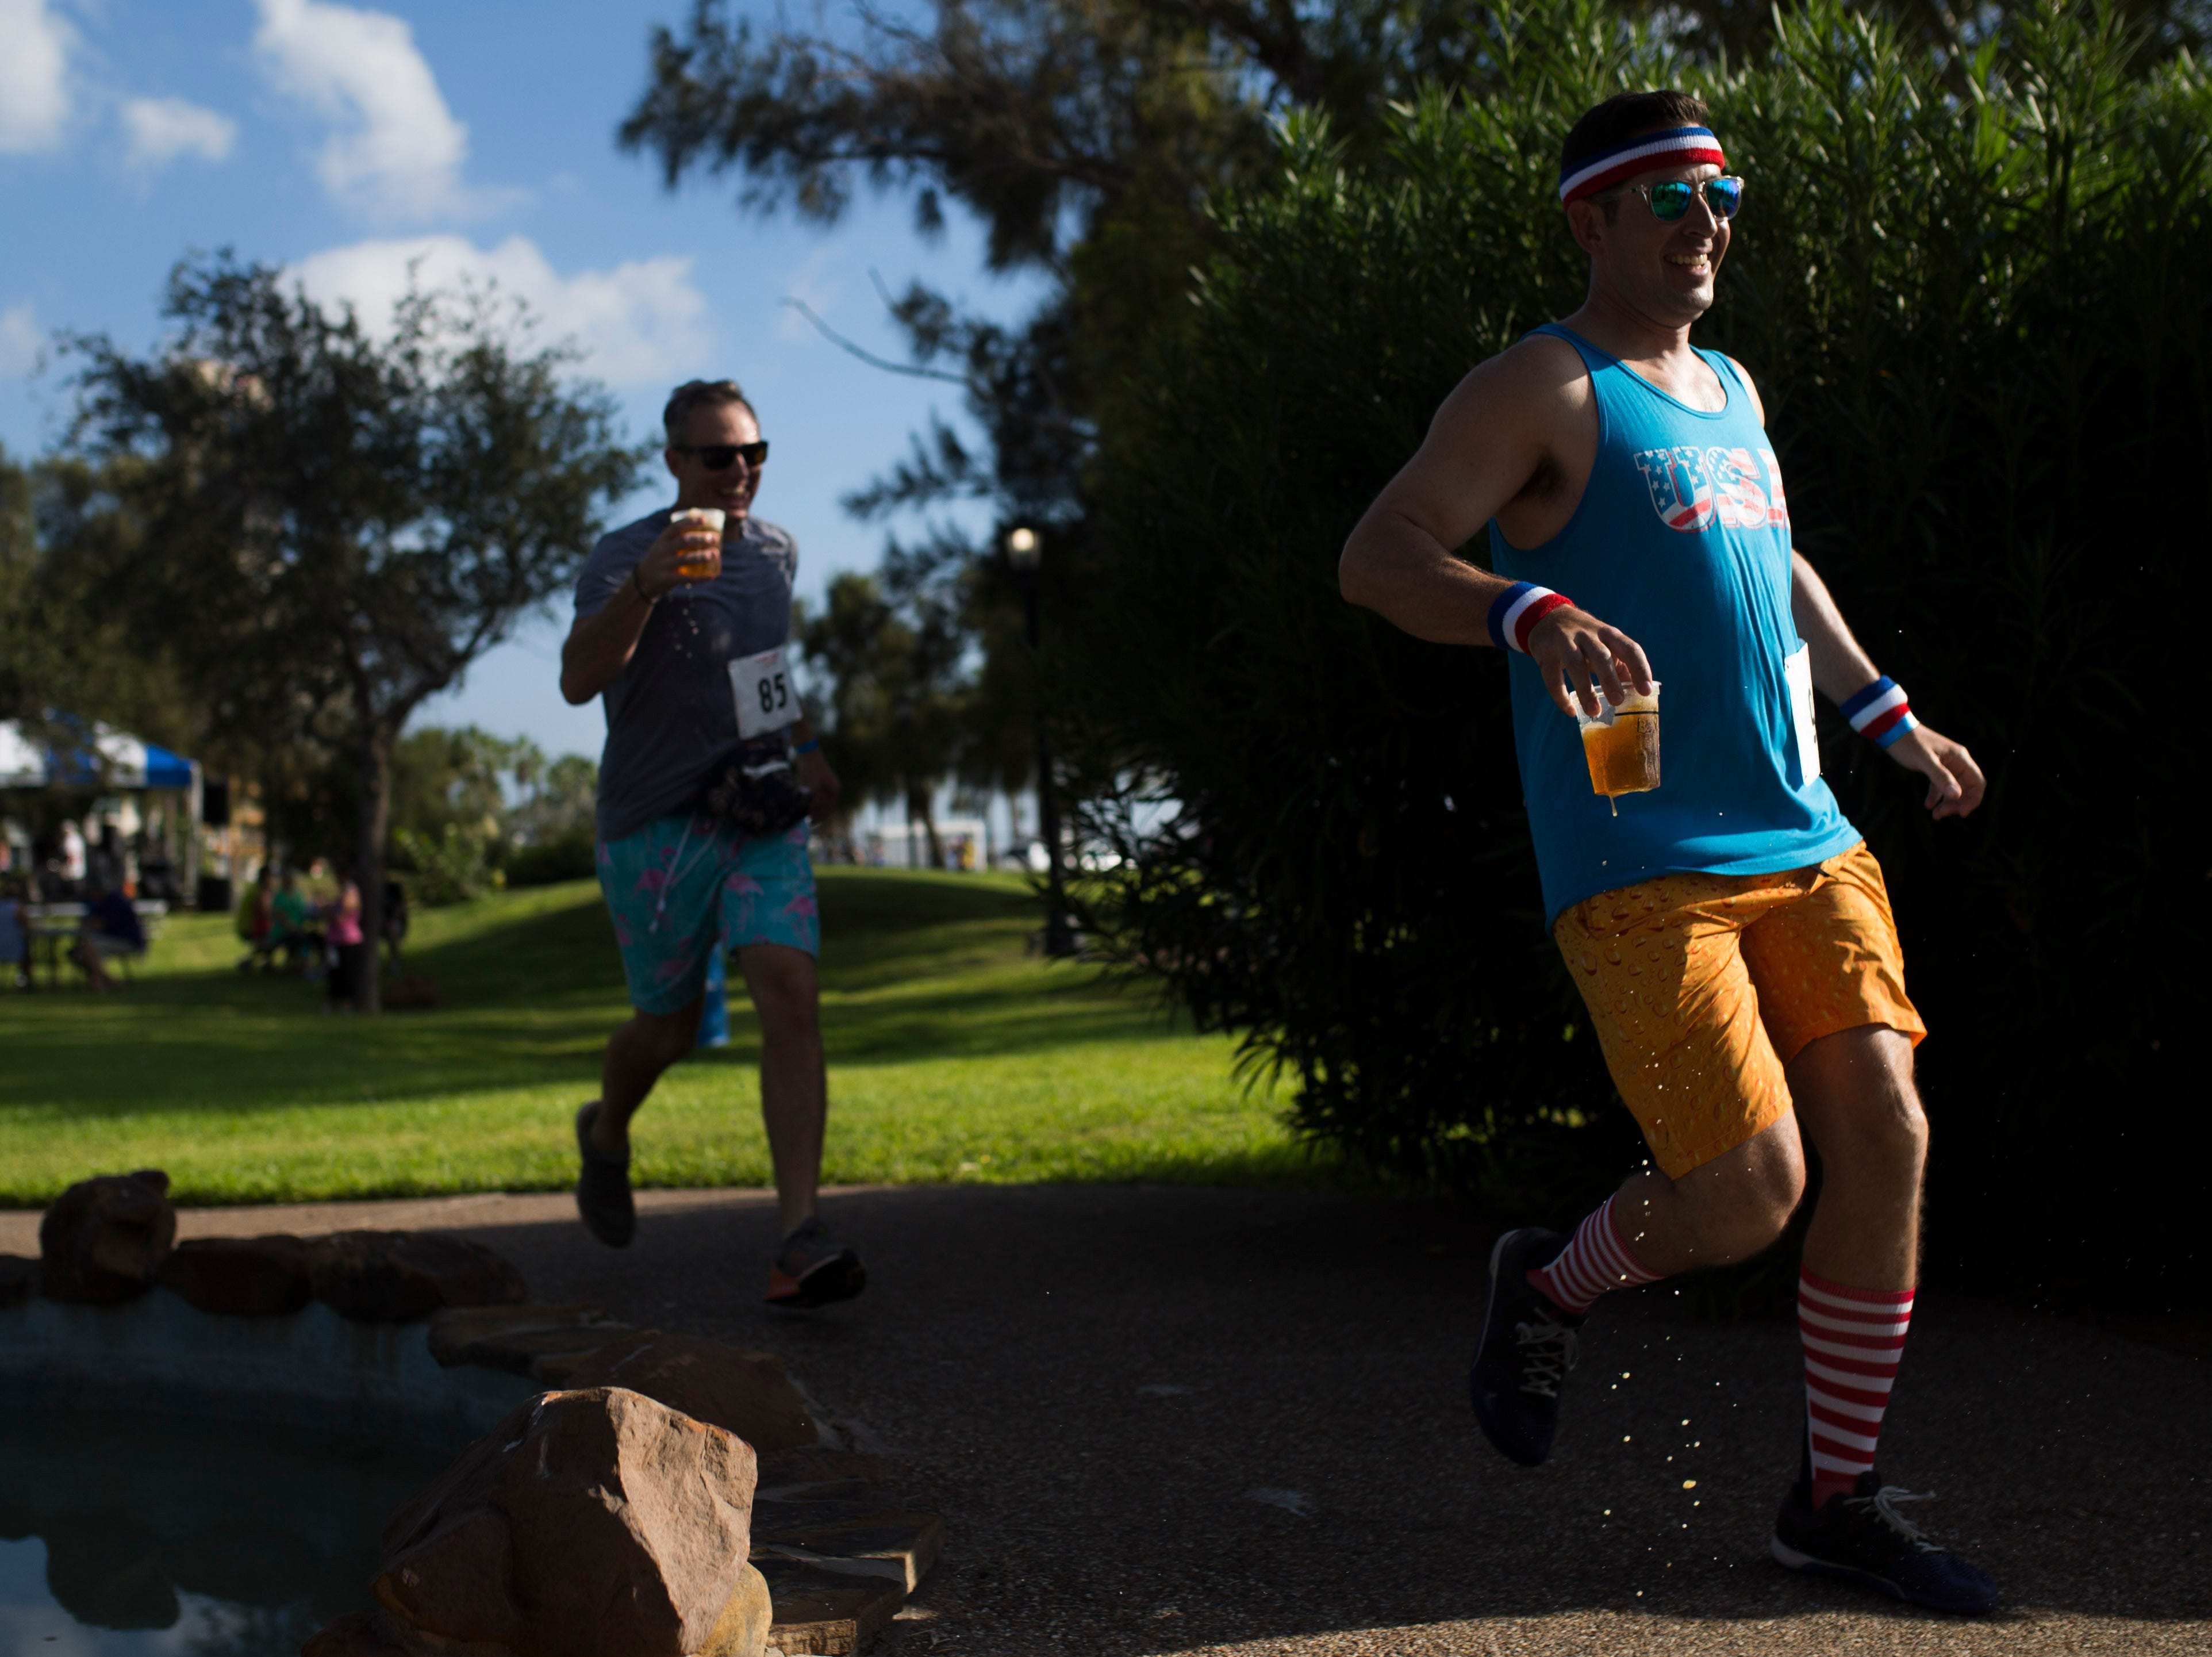 John Kollar, 40, finishes the 1/2 K By the Bay Beer Run during the annual Arts Alive Festival at the Art Center of Corpus Christi on Saturday, Sep. 1, 2018.